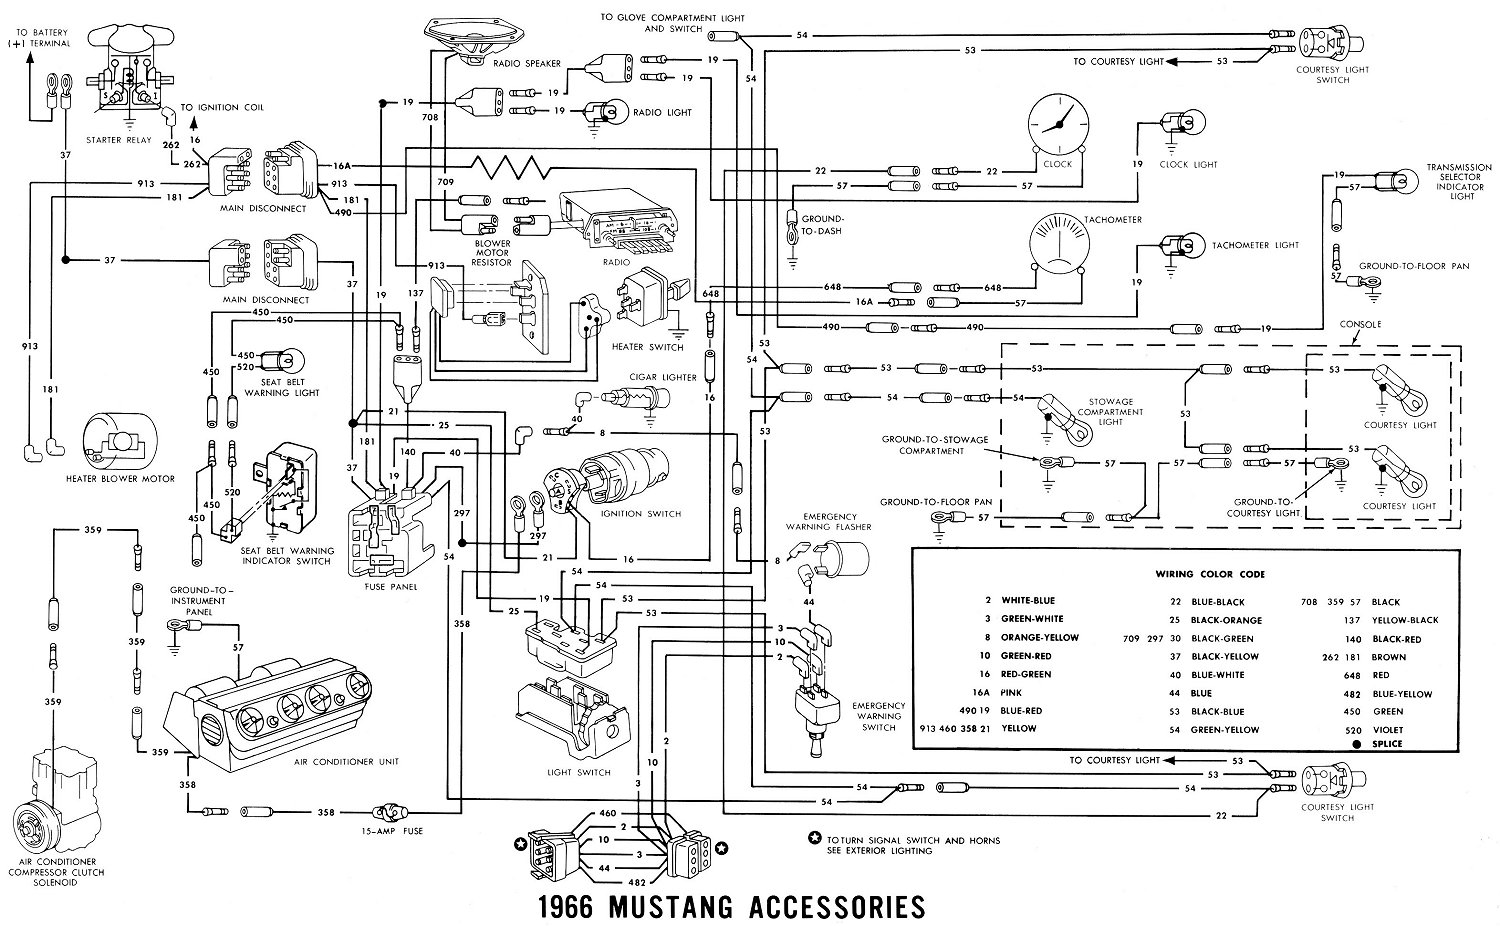 66acces1 1966 mustang wiring diagram 1967 mustang wiring schematic \u2022 wiring 1967 mustang ignition wiring diagram at gsmx.co